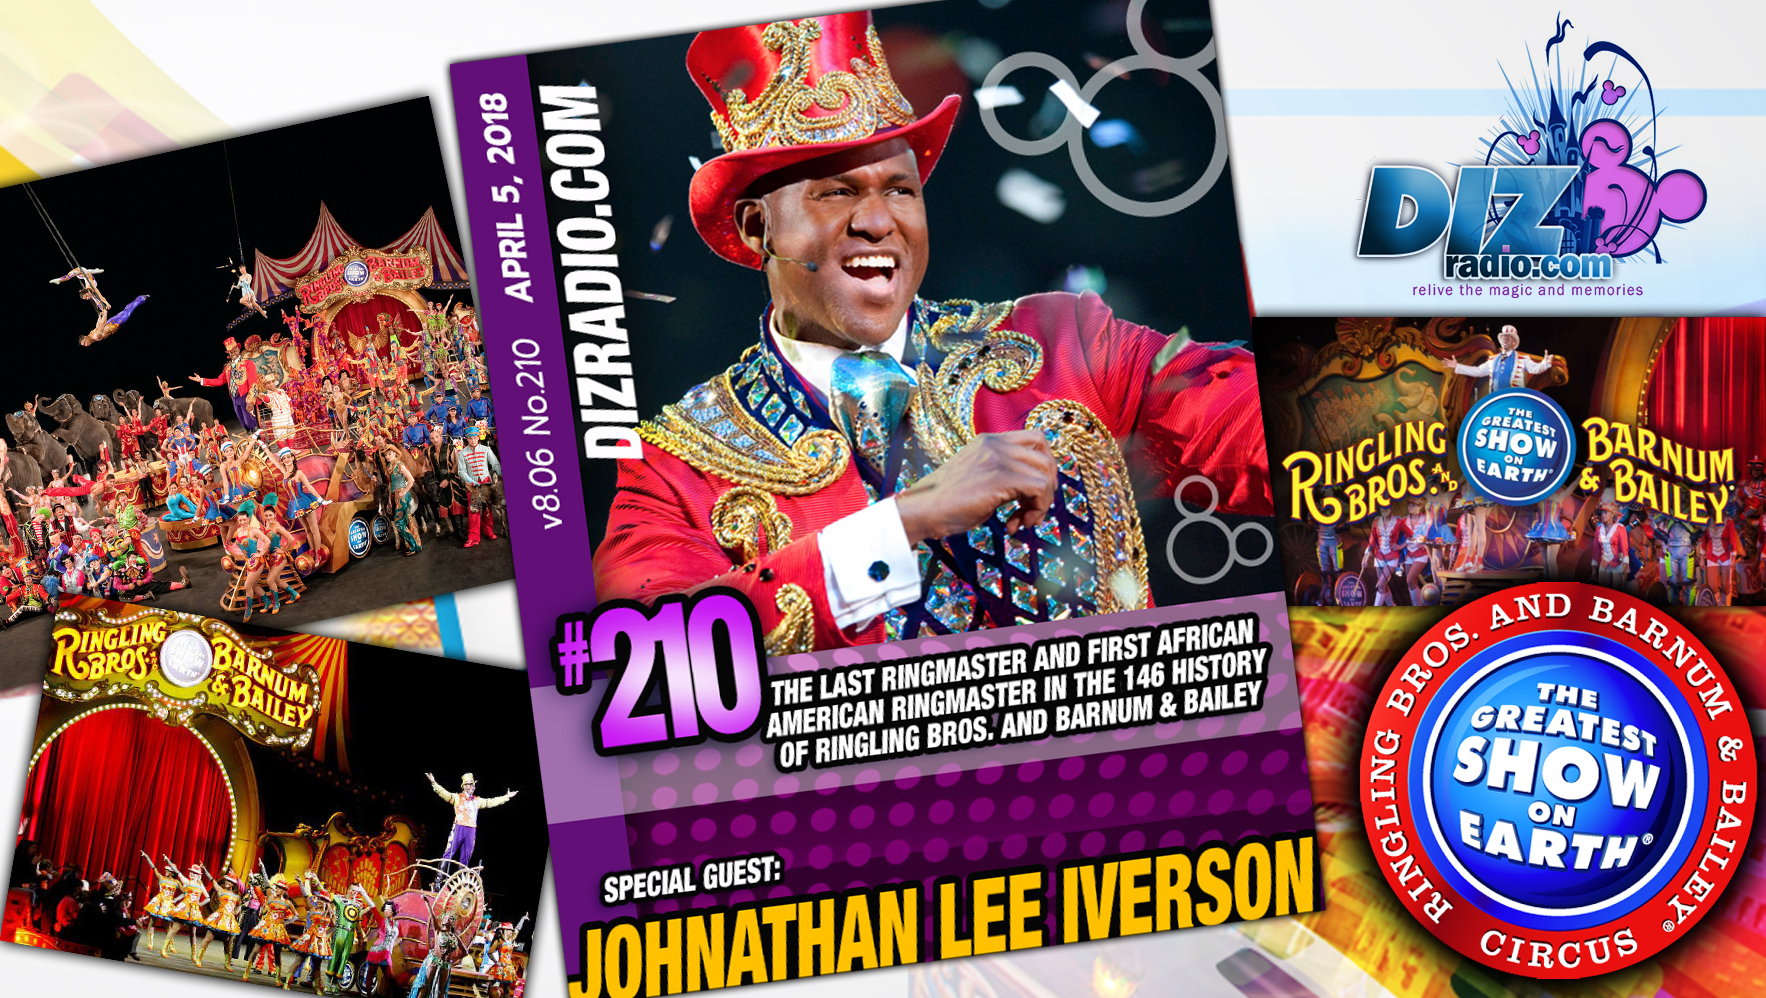 DisneyBlu's DizRadio Disney on Demand Show #210 w/ Guest JOHNATHAN LEE IVERSON (The Last Ringmaster and First African American Ringmaster in the 146 Year History of Ringling Bros. and Barnum & Bailey Circus)